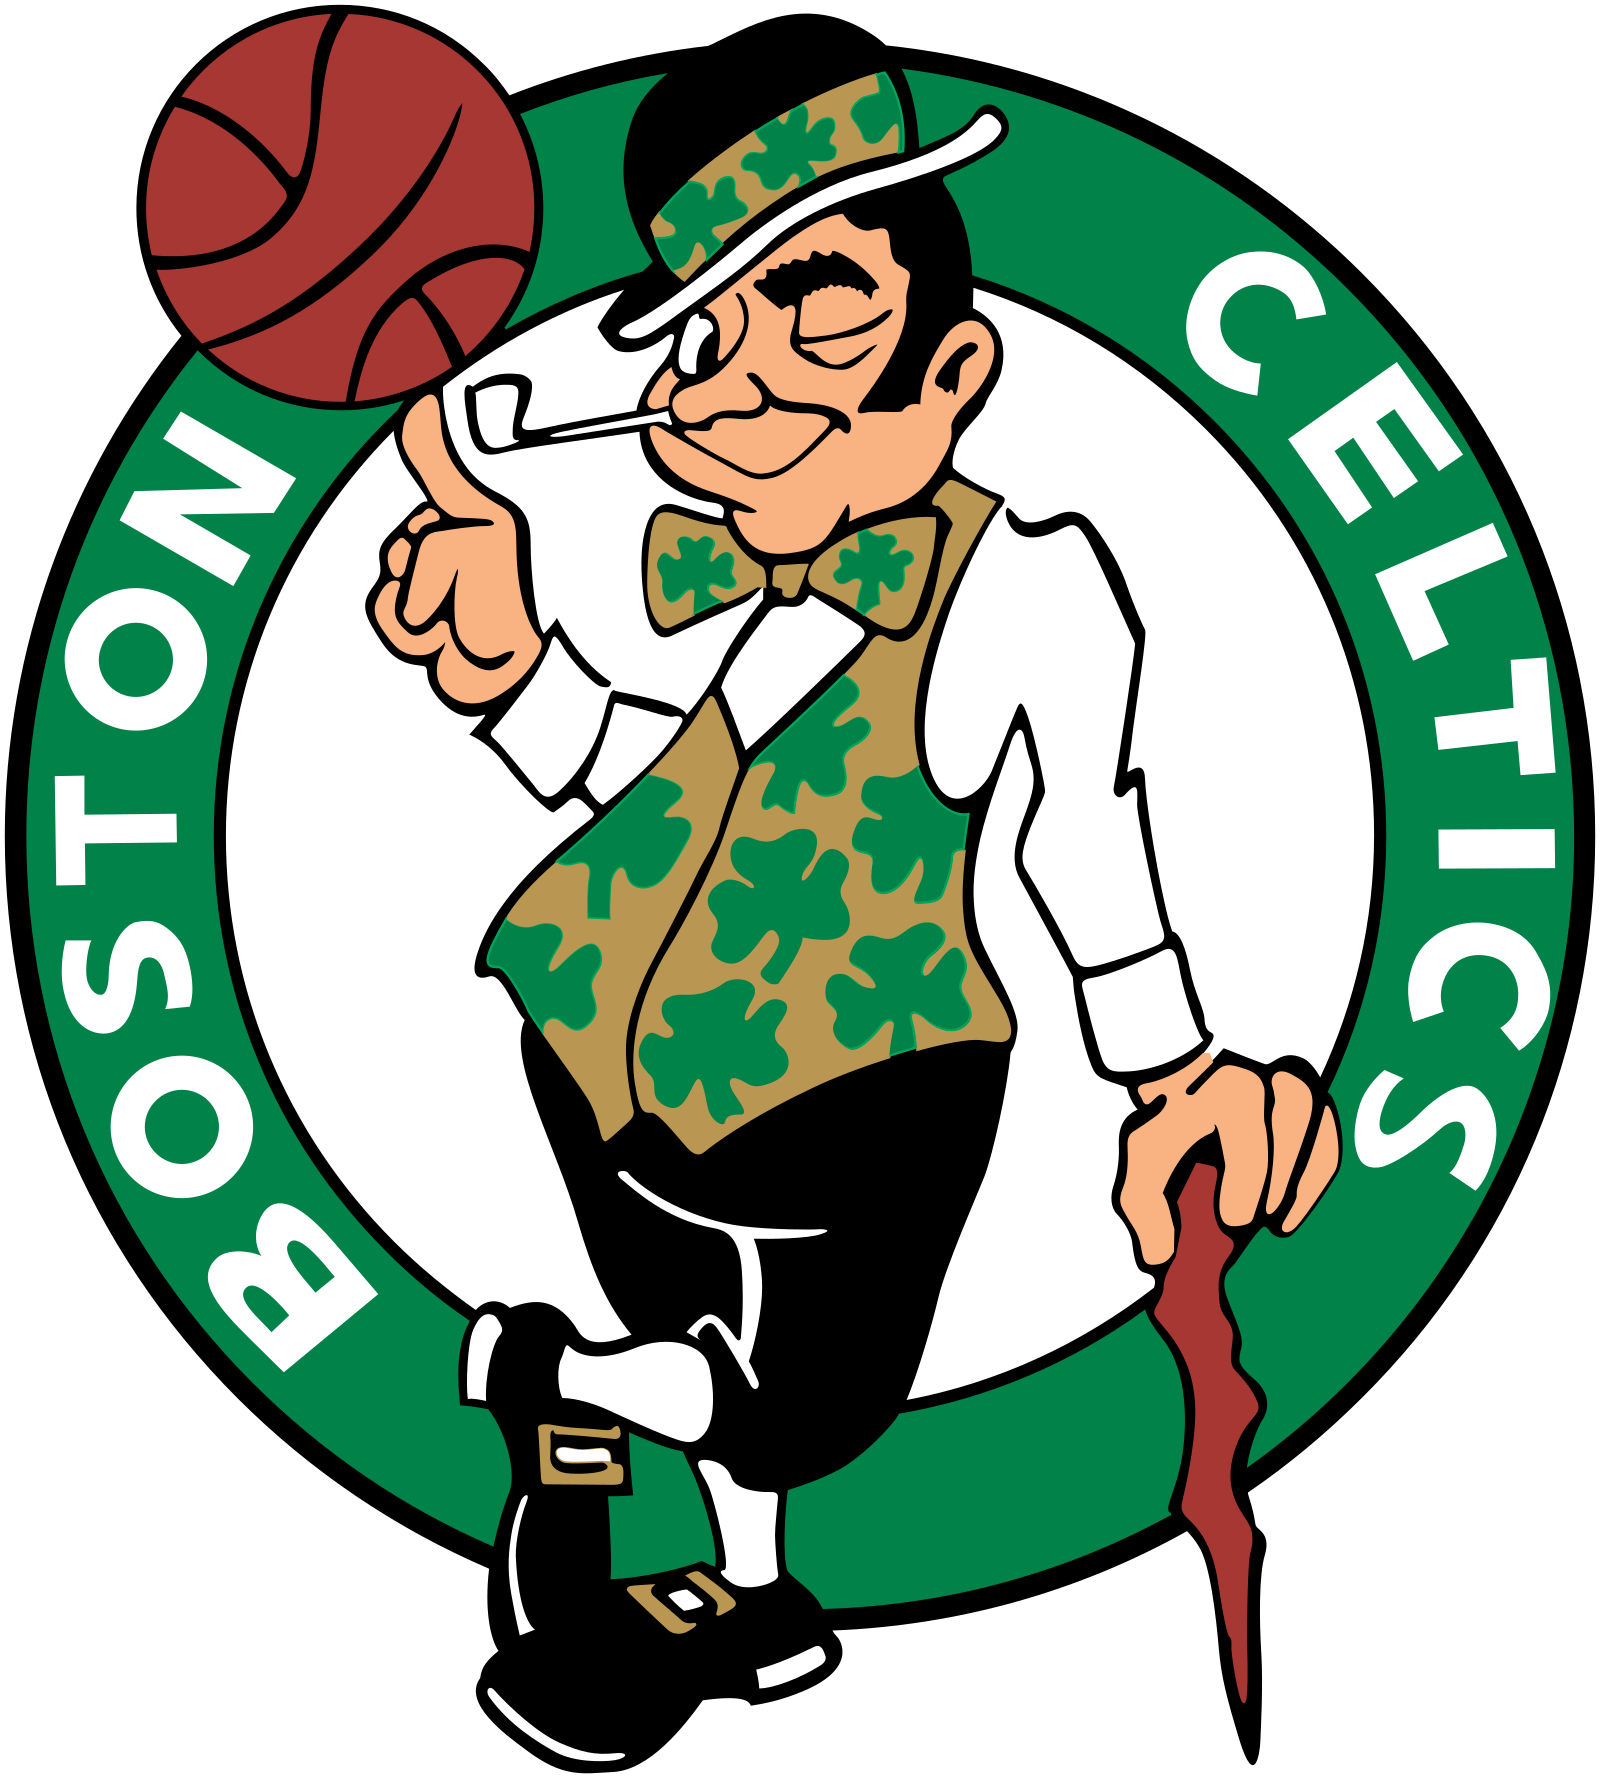 boston celtics logo 2 - Boston Celtics Logo